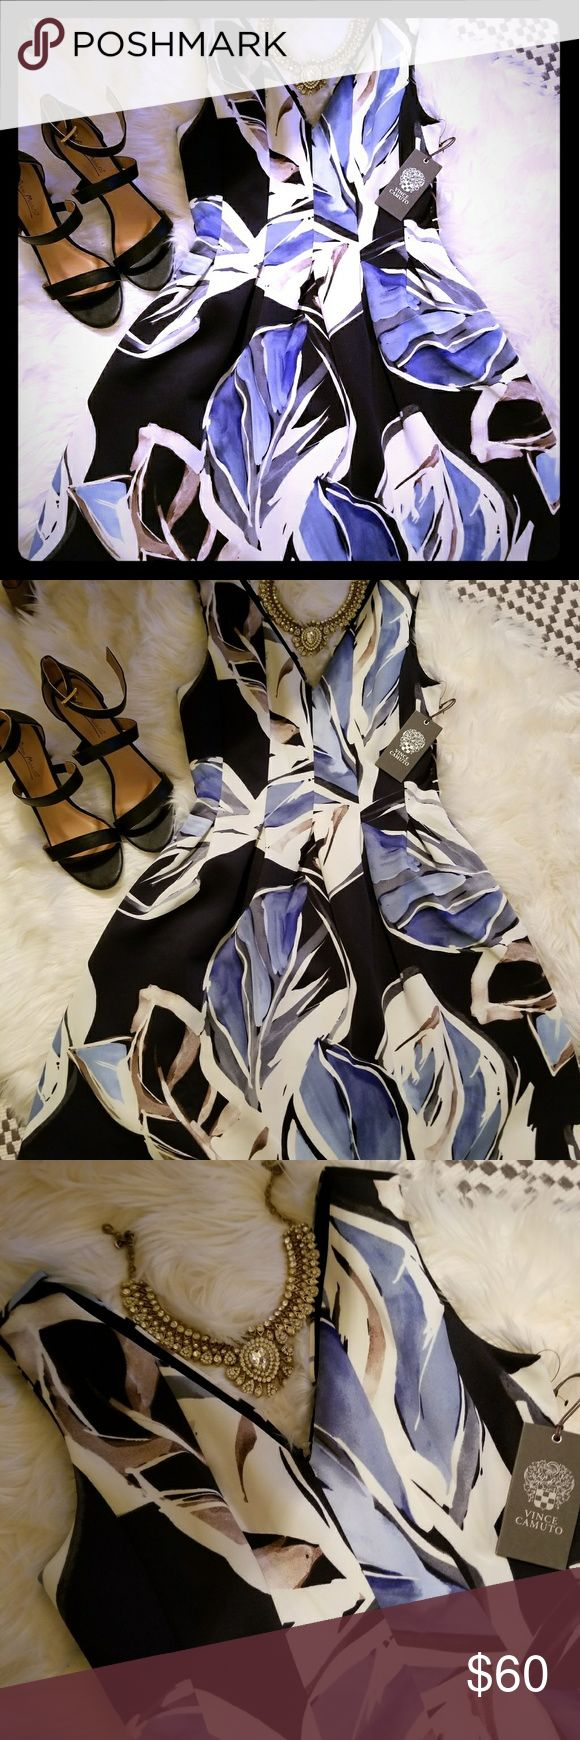 Stunning Vinve Camuto dress Perfect color combination and pattern. Extremely flattering style! Fit and flare. V neck in front and back. Back zipper. Perfect for a night out or a wedding. You will be sure to turn heads in this gorgeous dress. New with tags. Vince Camuto Dresses